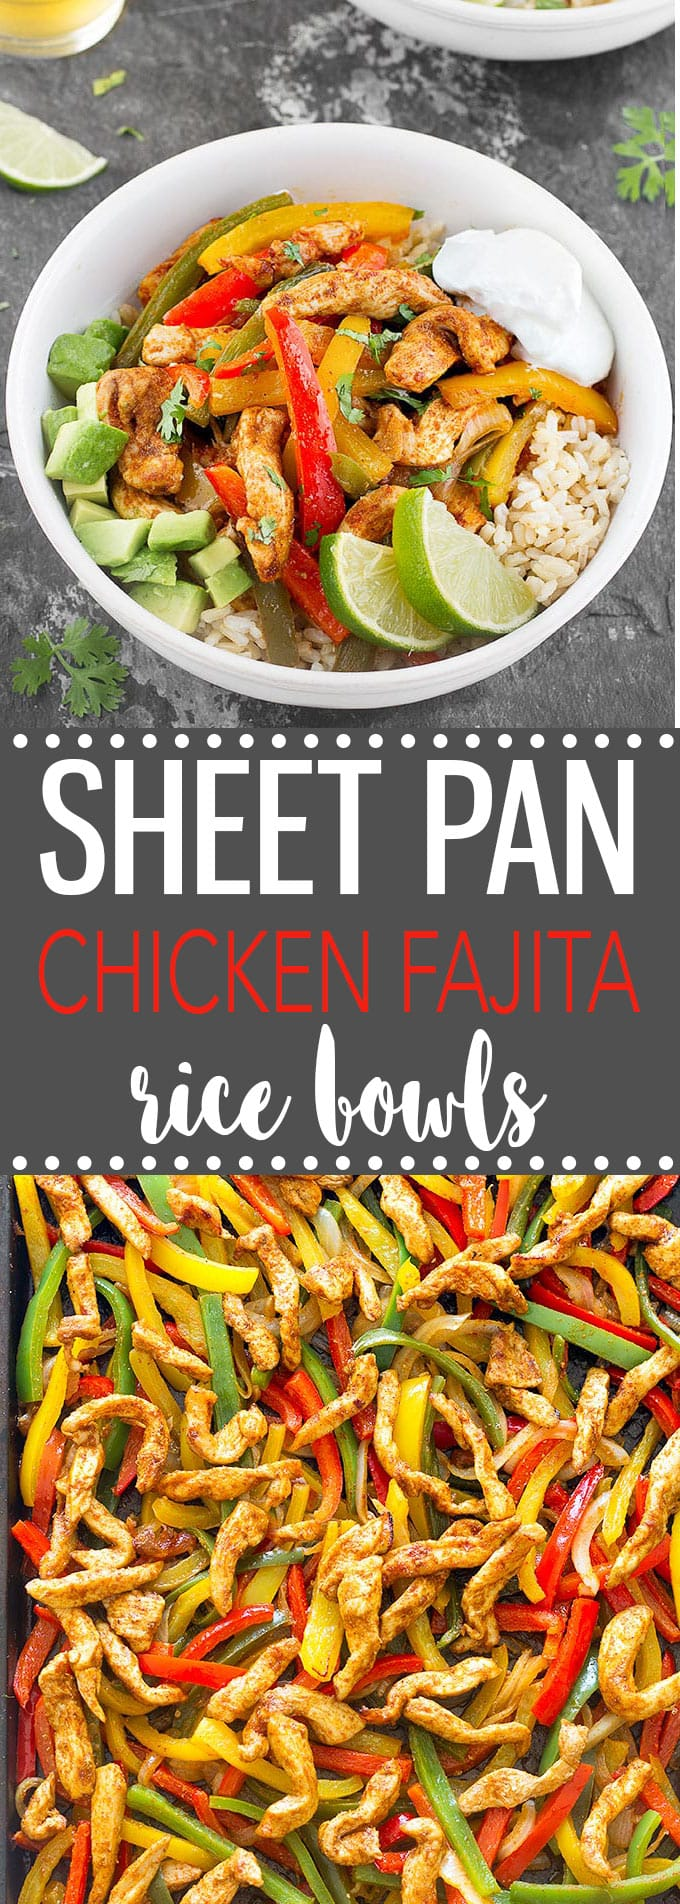 Sheet Pan Chicken Fajita Rice Bowls- A quick, simple and mouthwatering weeknight dinner that makes great leftovers! #weeknightdinner #dinner #mealprep #chickendinner #easyrecipe #fajita #bowls | aseasyasapplepie.com